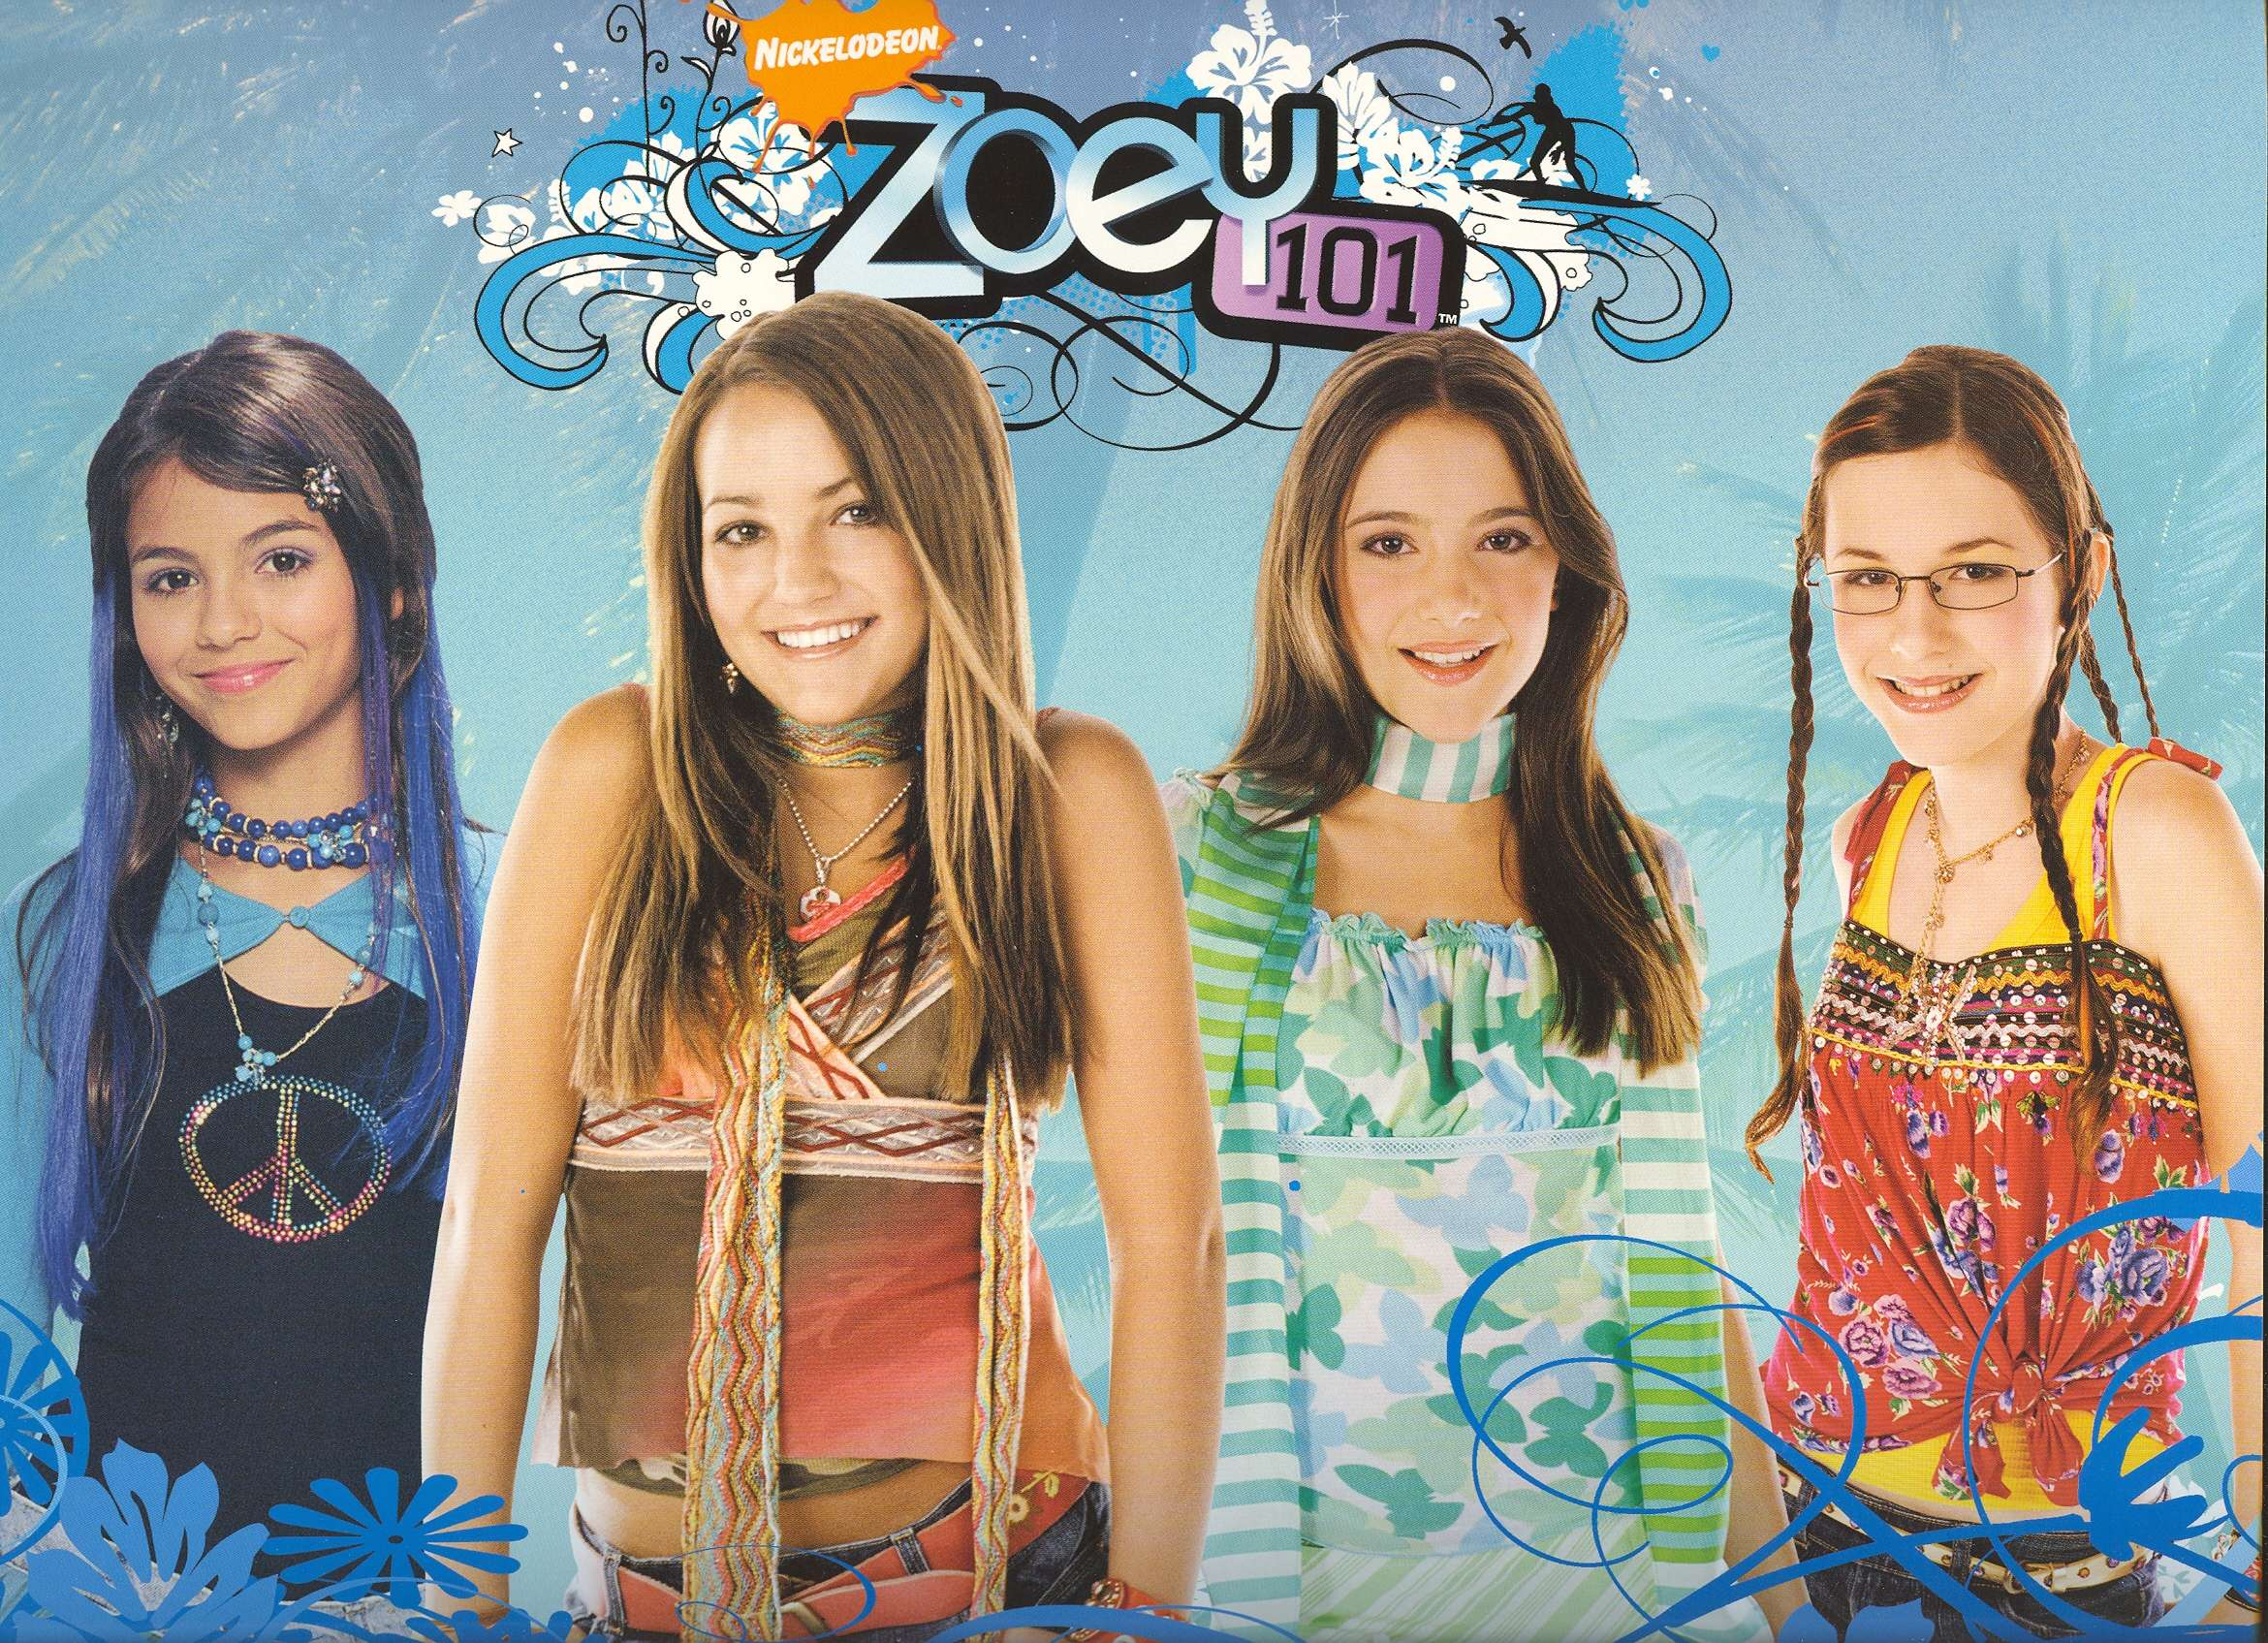 Zoey 101 Theme Song | ...